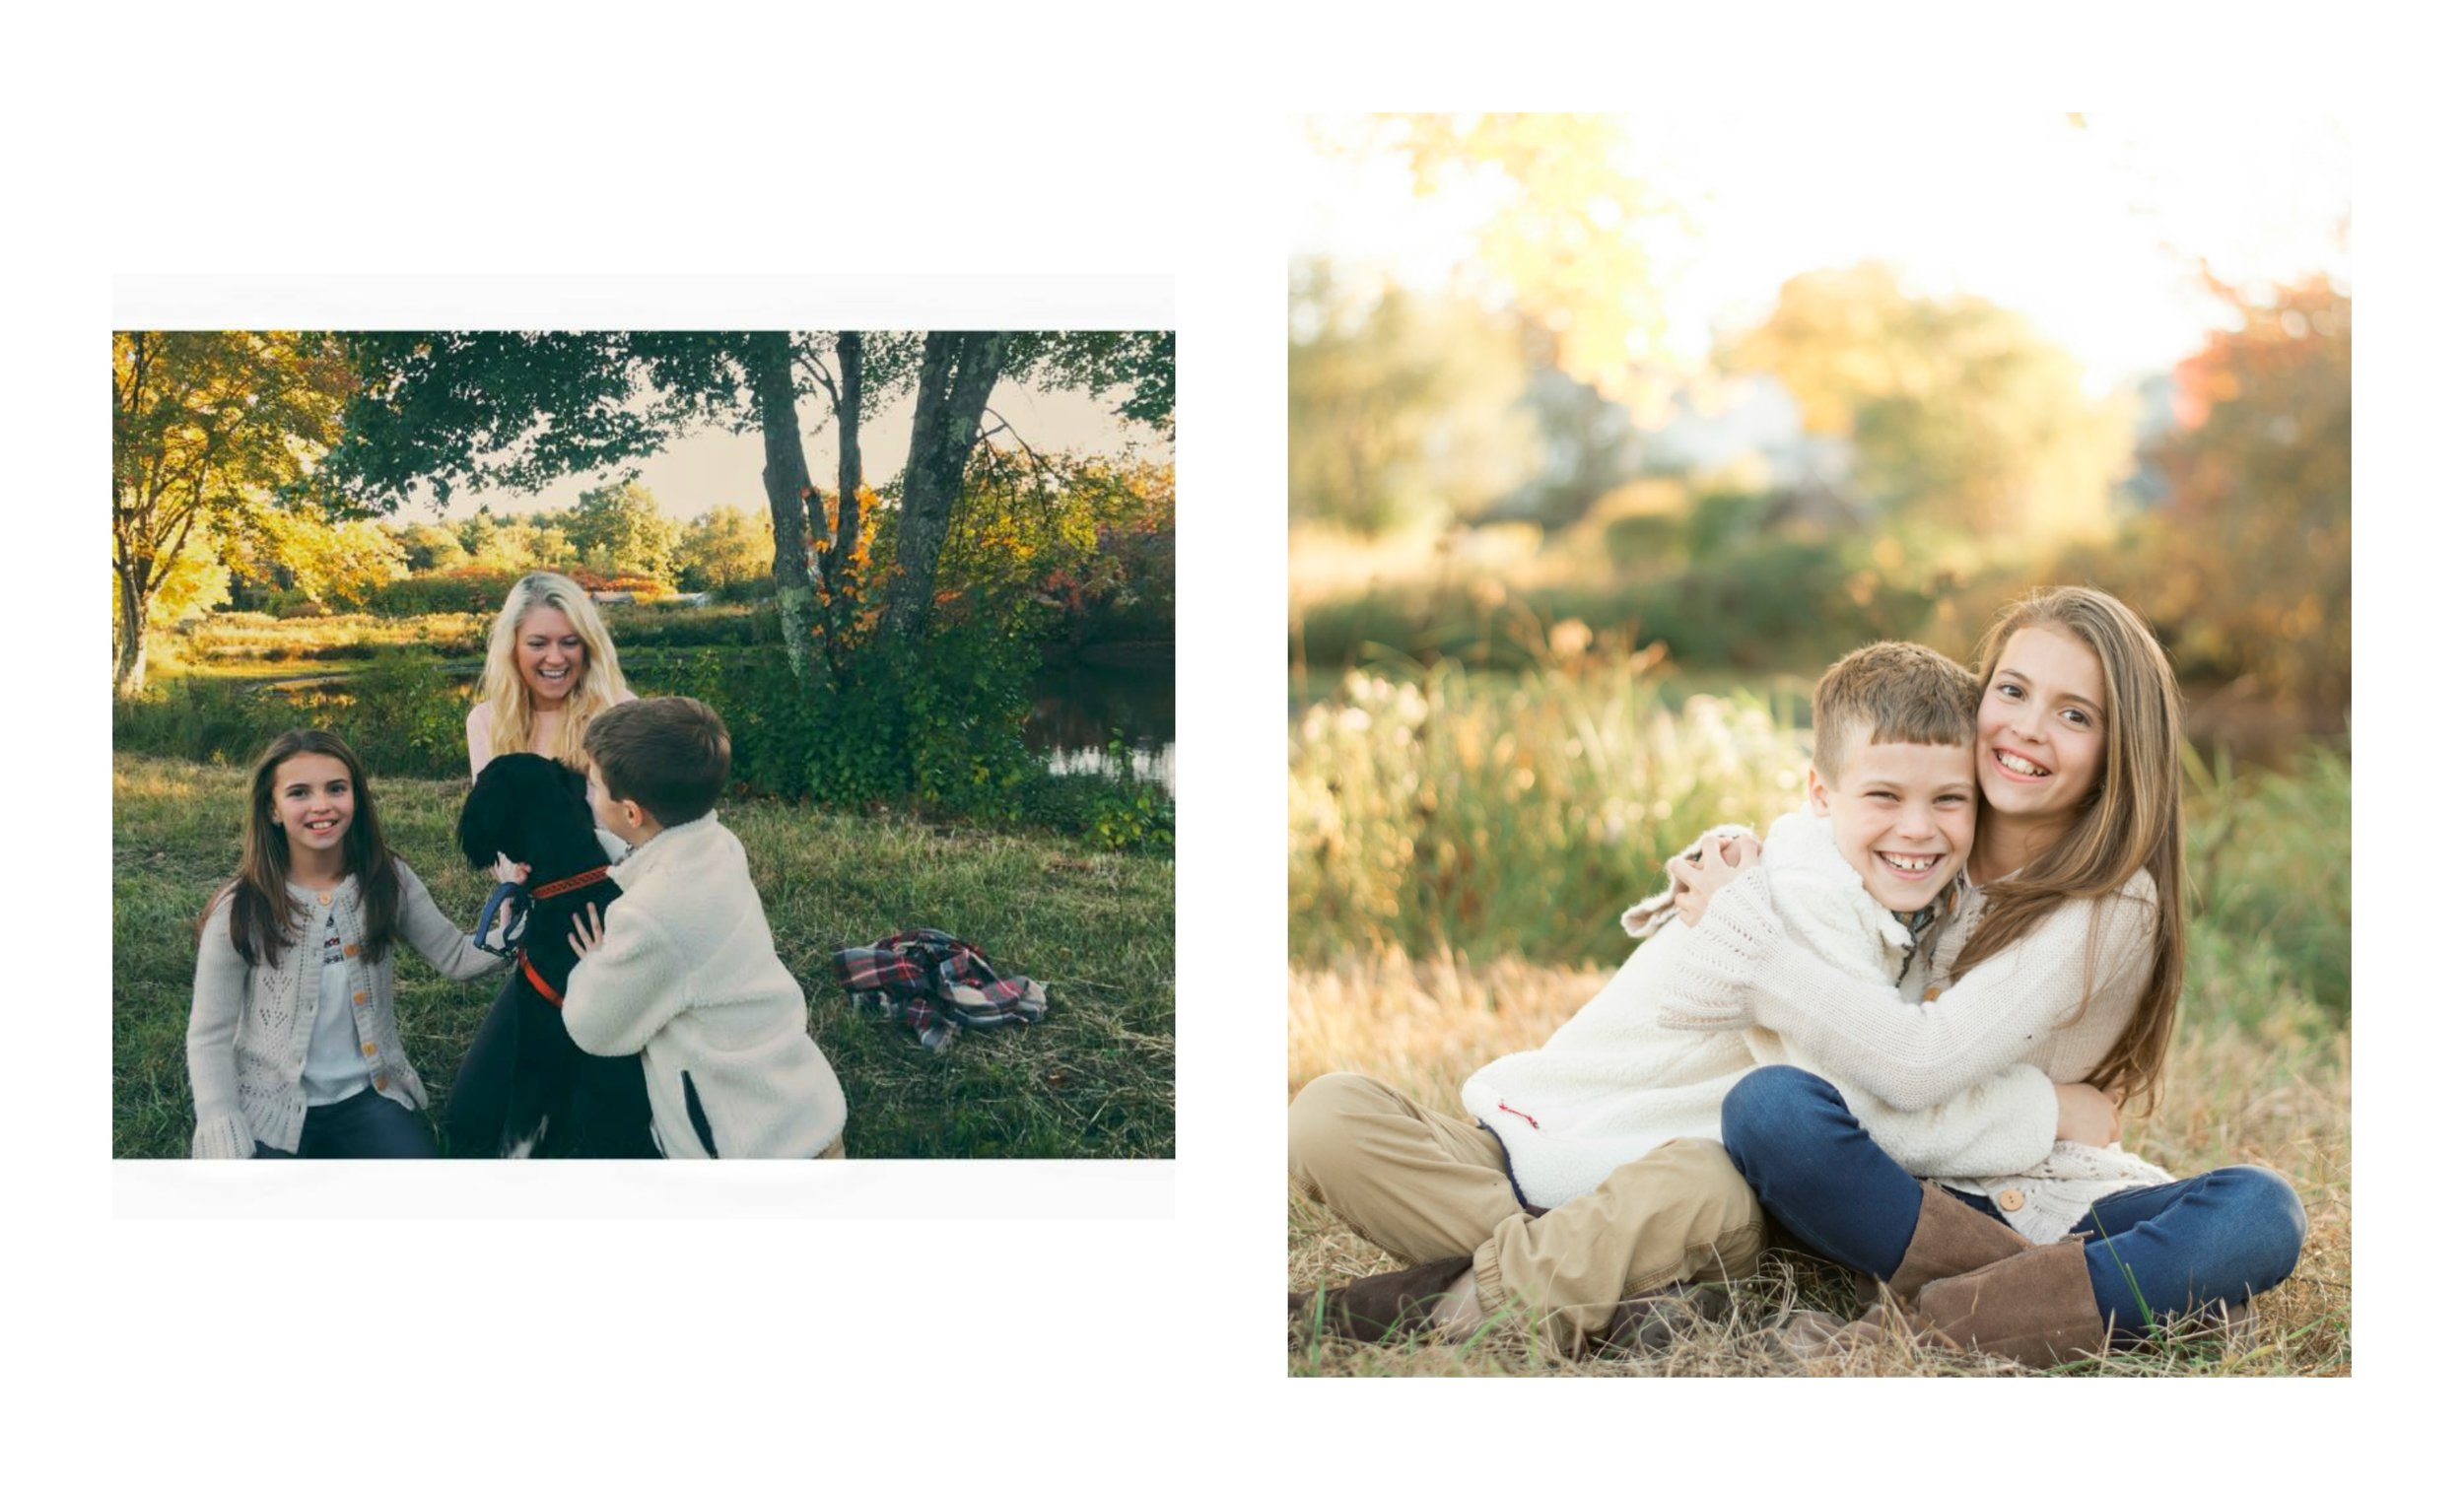 The Young family was my first family session of the year and this was my first time getting the chance to work with them!